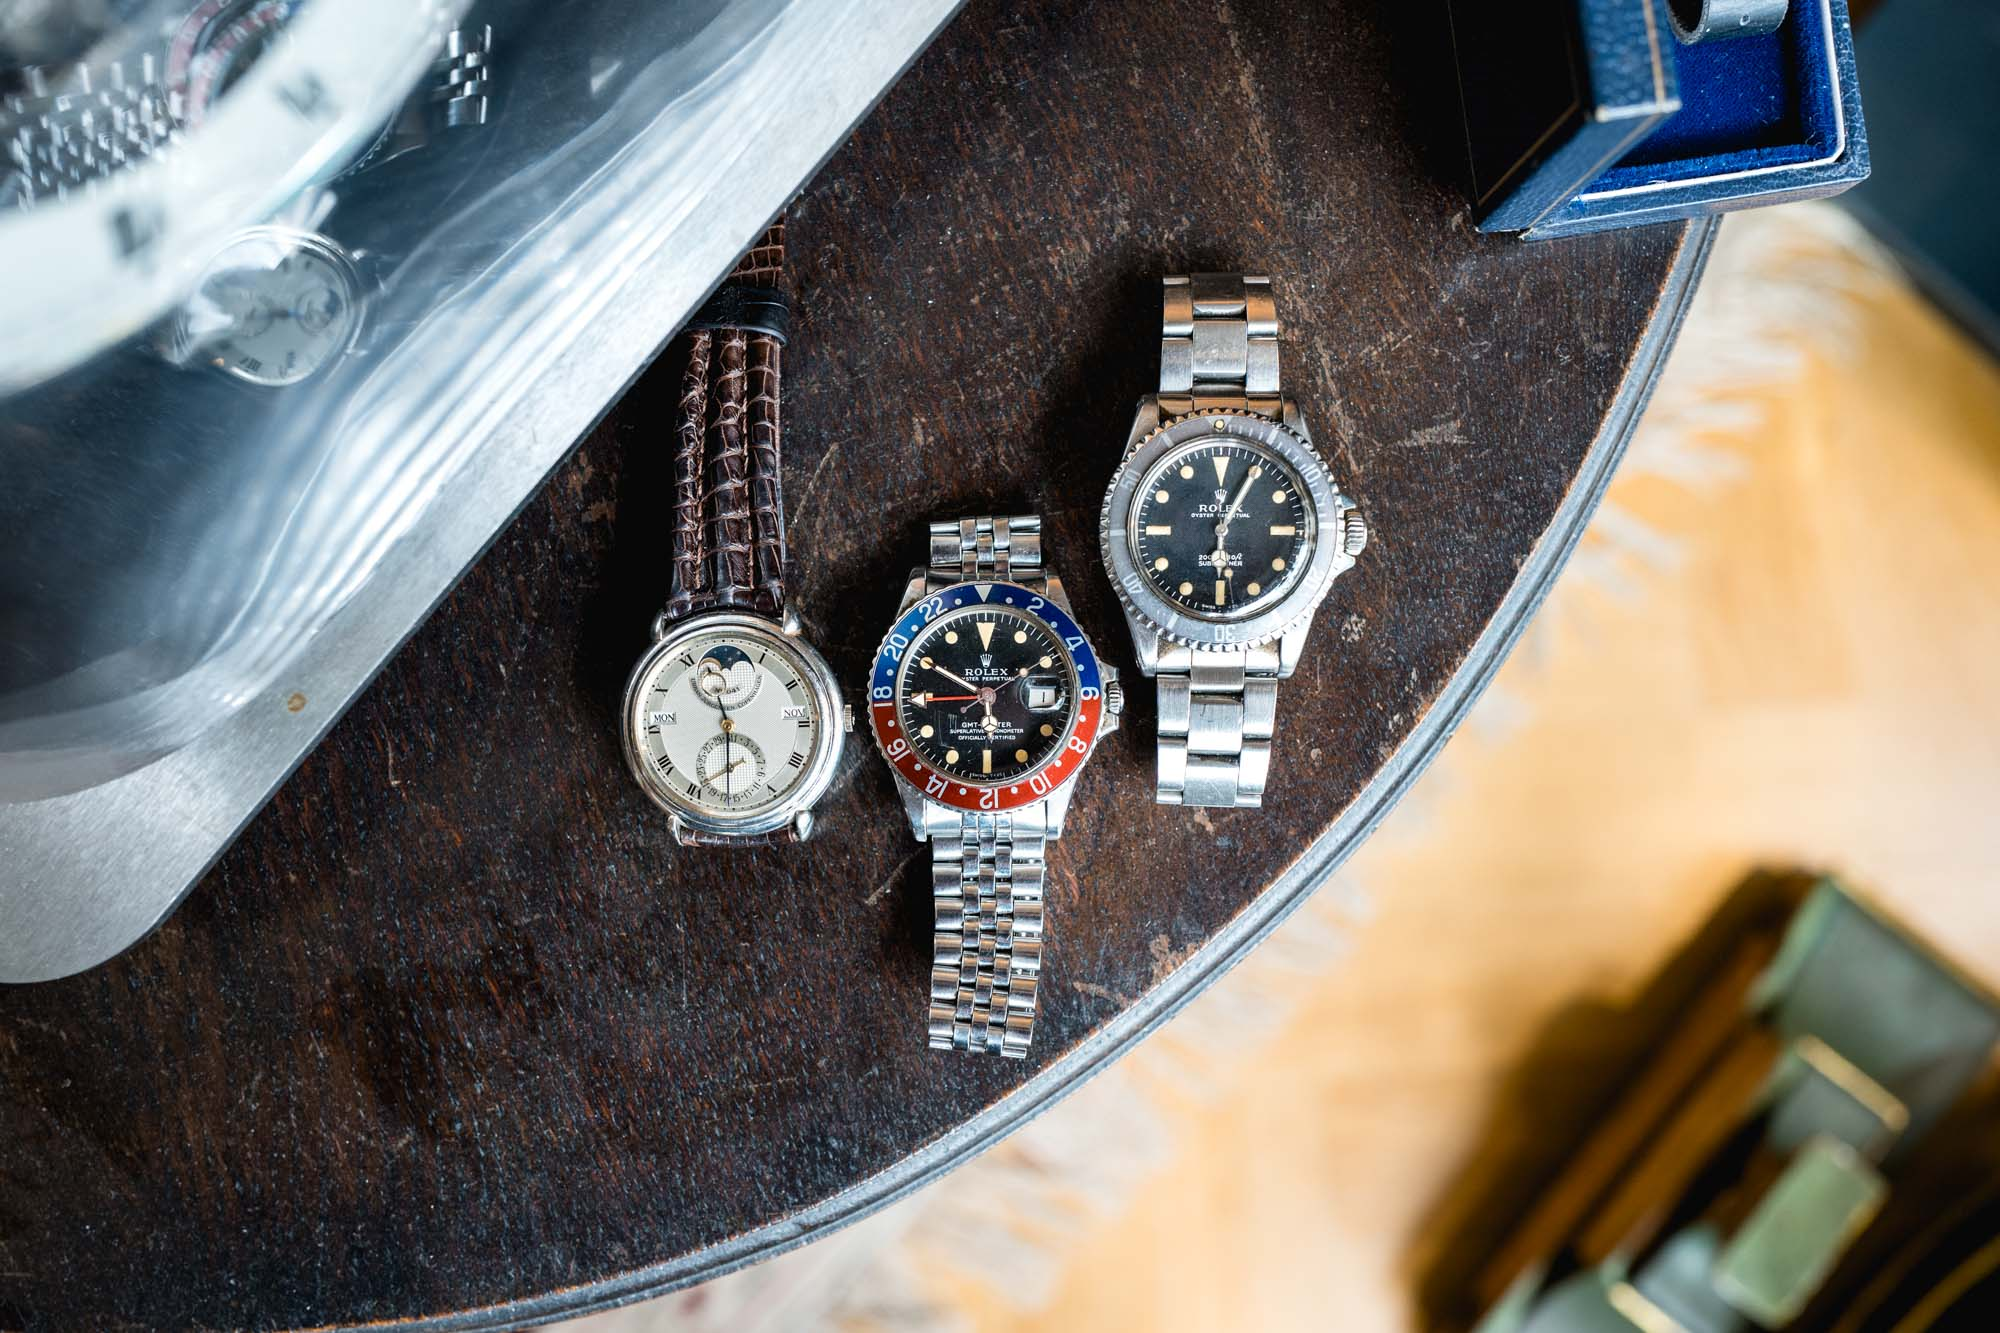 Antique Watches Basel - Urban Jürgensen Perpetual Calendar / Rolex GMT-Master 1675 / Rolex Submariner 5513